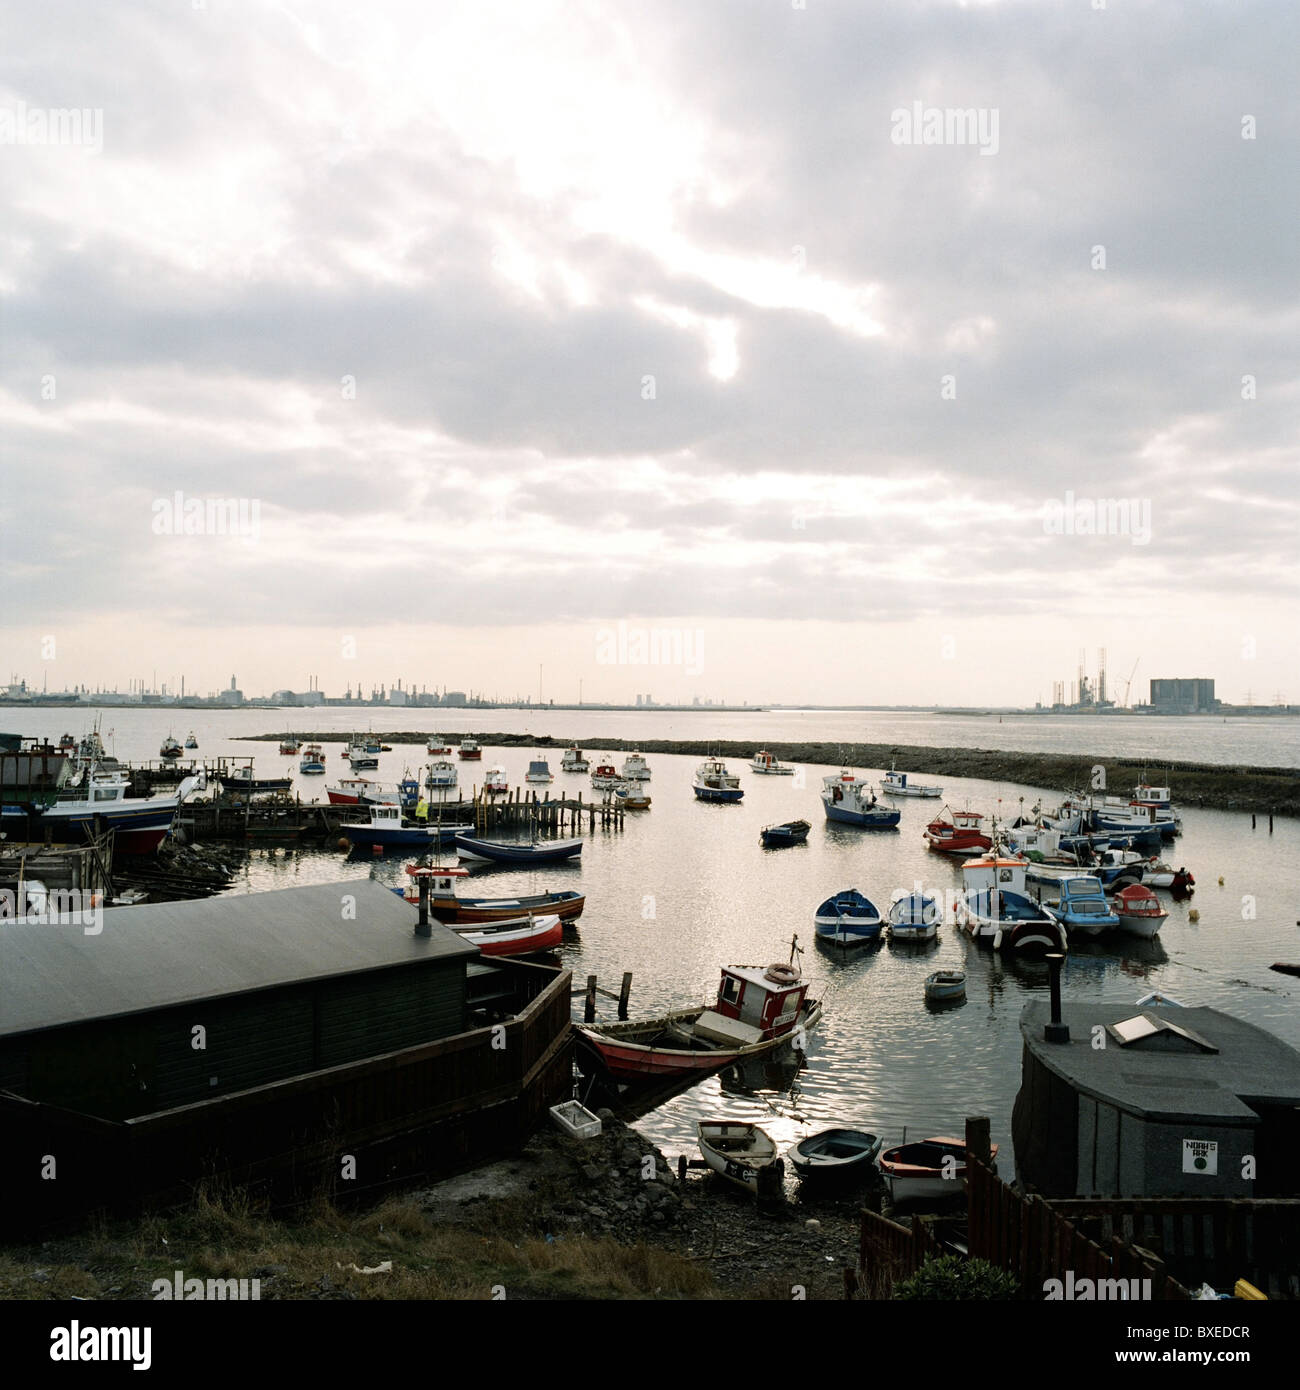 Fishing boats docked at high tide in Paddy's Hole harbour, near Redcar, Cleveland. - Stock Image